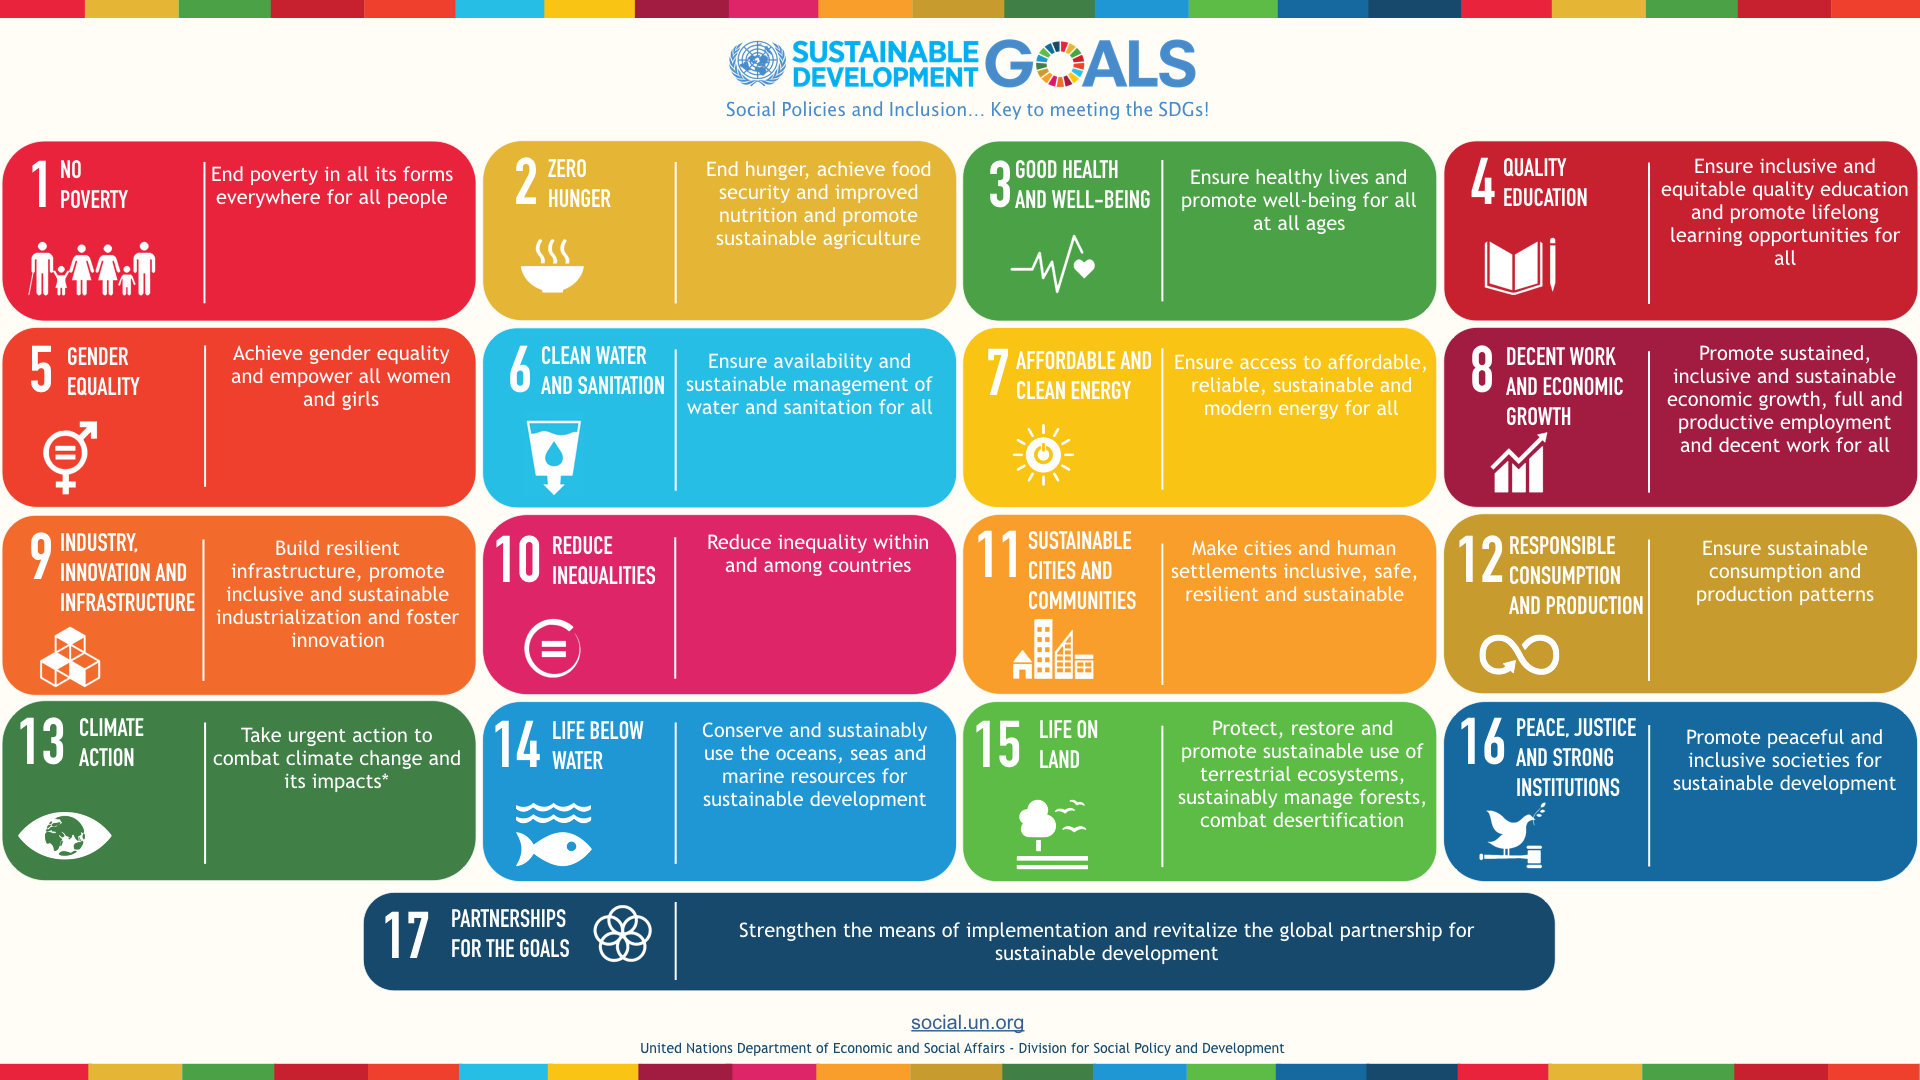 Problem seekers:  Can we connect our activity to all 17 goals?